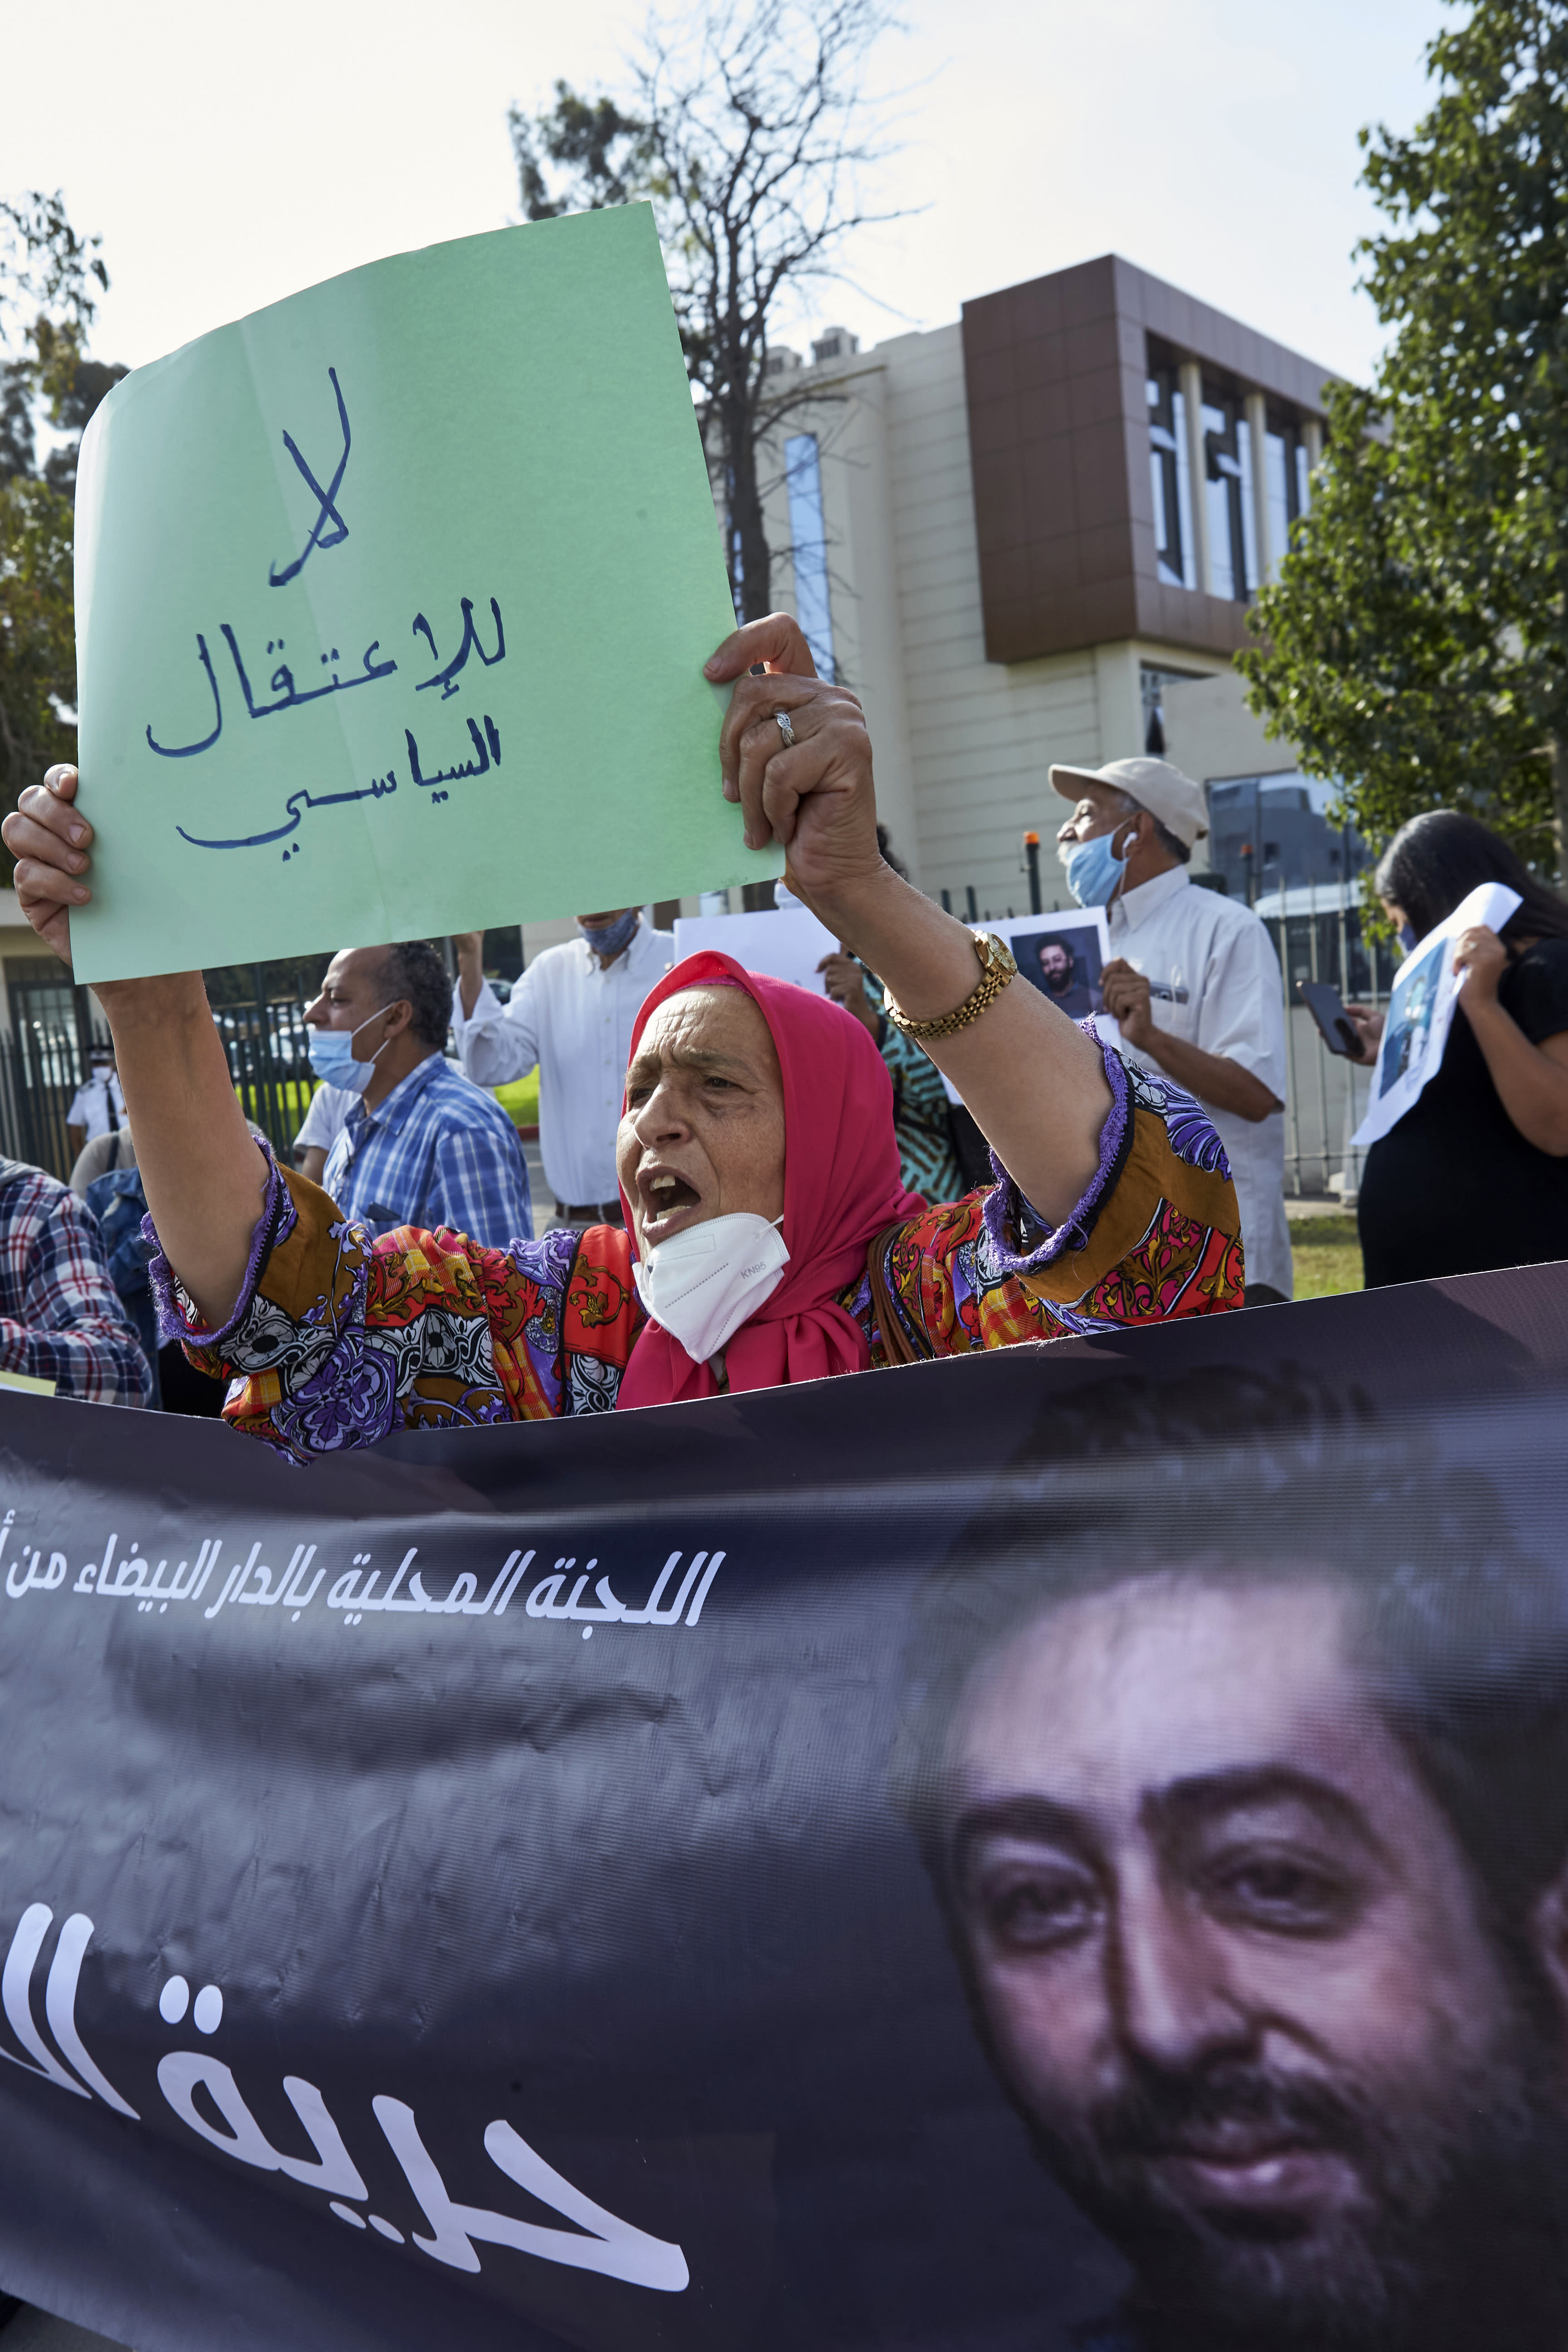 """Activist Mother Fatima holds up a banner that reads: """"No to political arrest"""", as she protests with others in front of the Casablanca Courthouse, in Casablanca, Morocco, Tuesday, Sept. 22, 2020, on the first day of the hearing of journalist and activist Omar Radi. The arrest of journalist Omar Radi follows numerous summons following a police investigation into suspicion of receiving funds linked to foreign intelligence. The investigation came after rights group Amnesty International accused Morocco of using Israeli-made spyware to snoop on its phone. (AP Photo/Abdeljalil Bounhar)"""